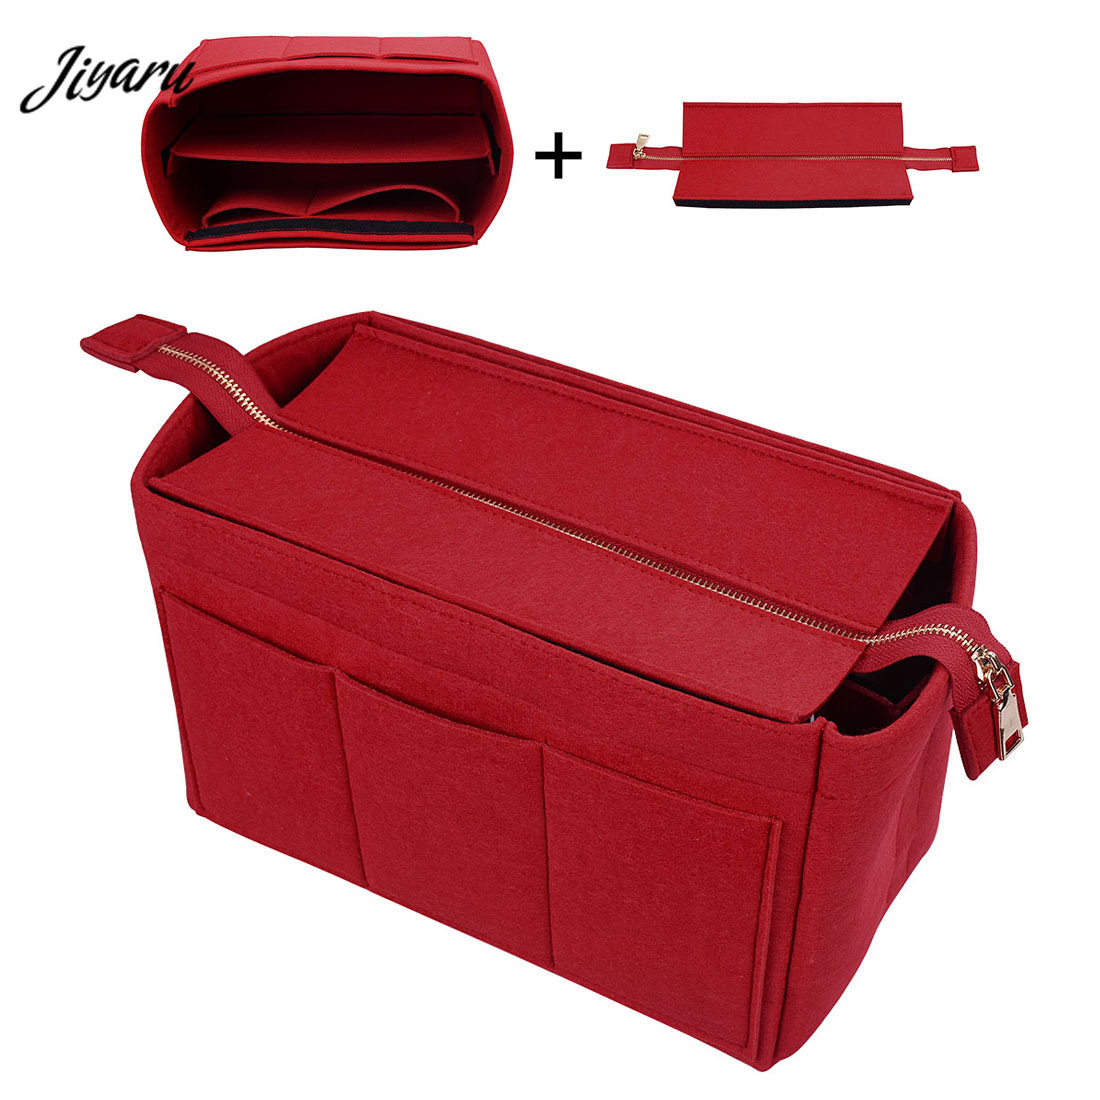 Hot Felt Makeup Bag Travel Cosmetic Handbags Organizer Felt Insert Bag Makeup Bag Organizer Ladies Travel Organizer Luggage